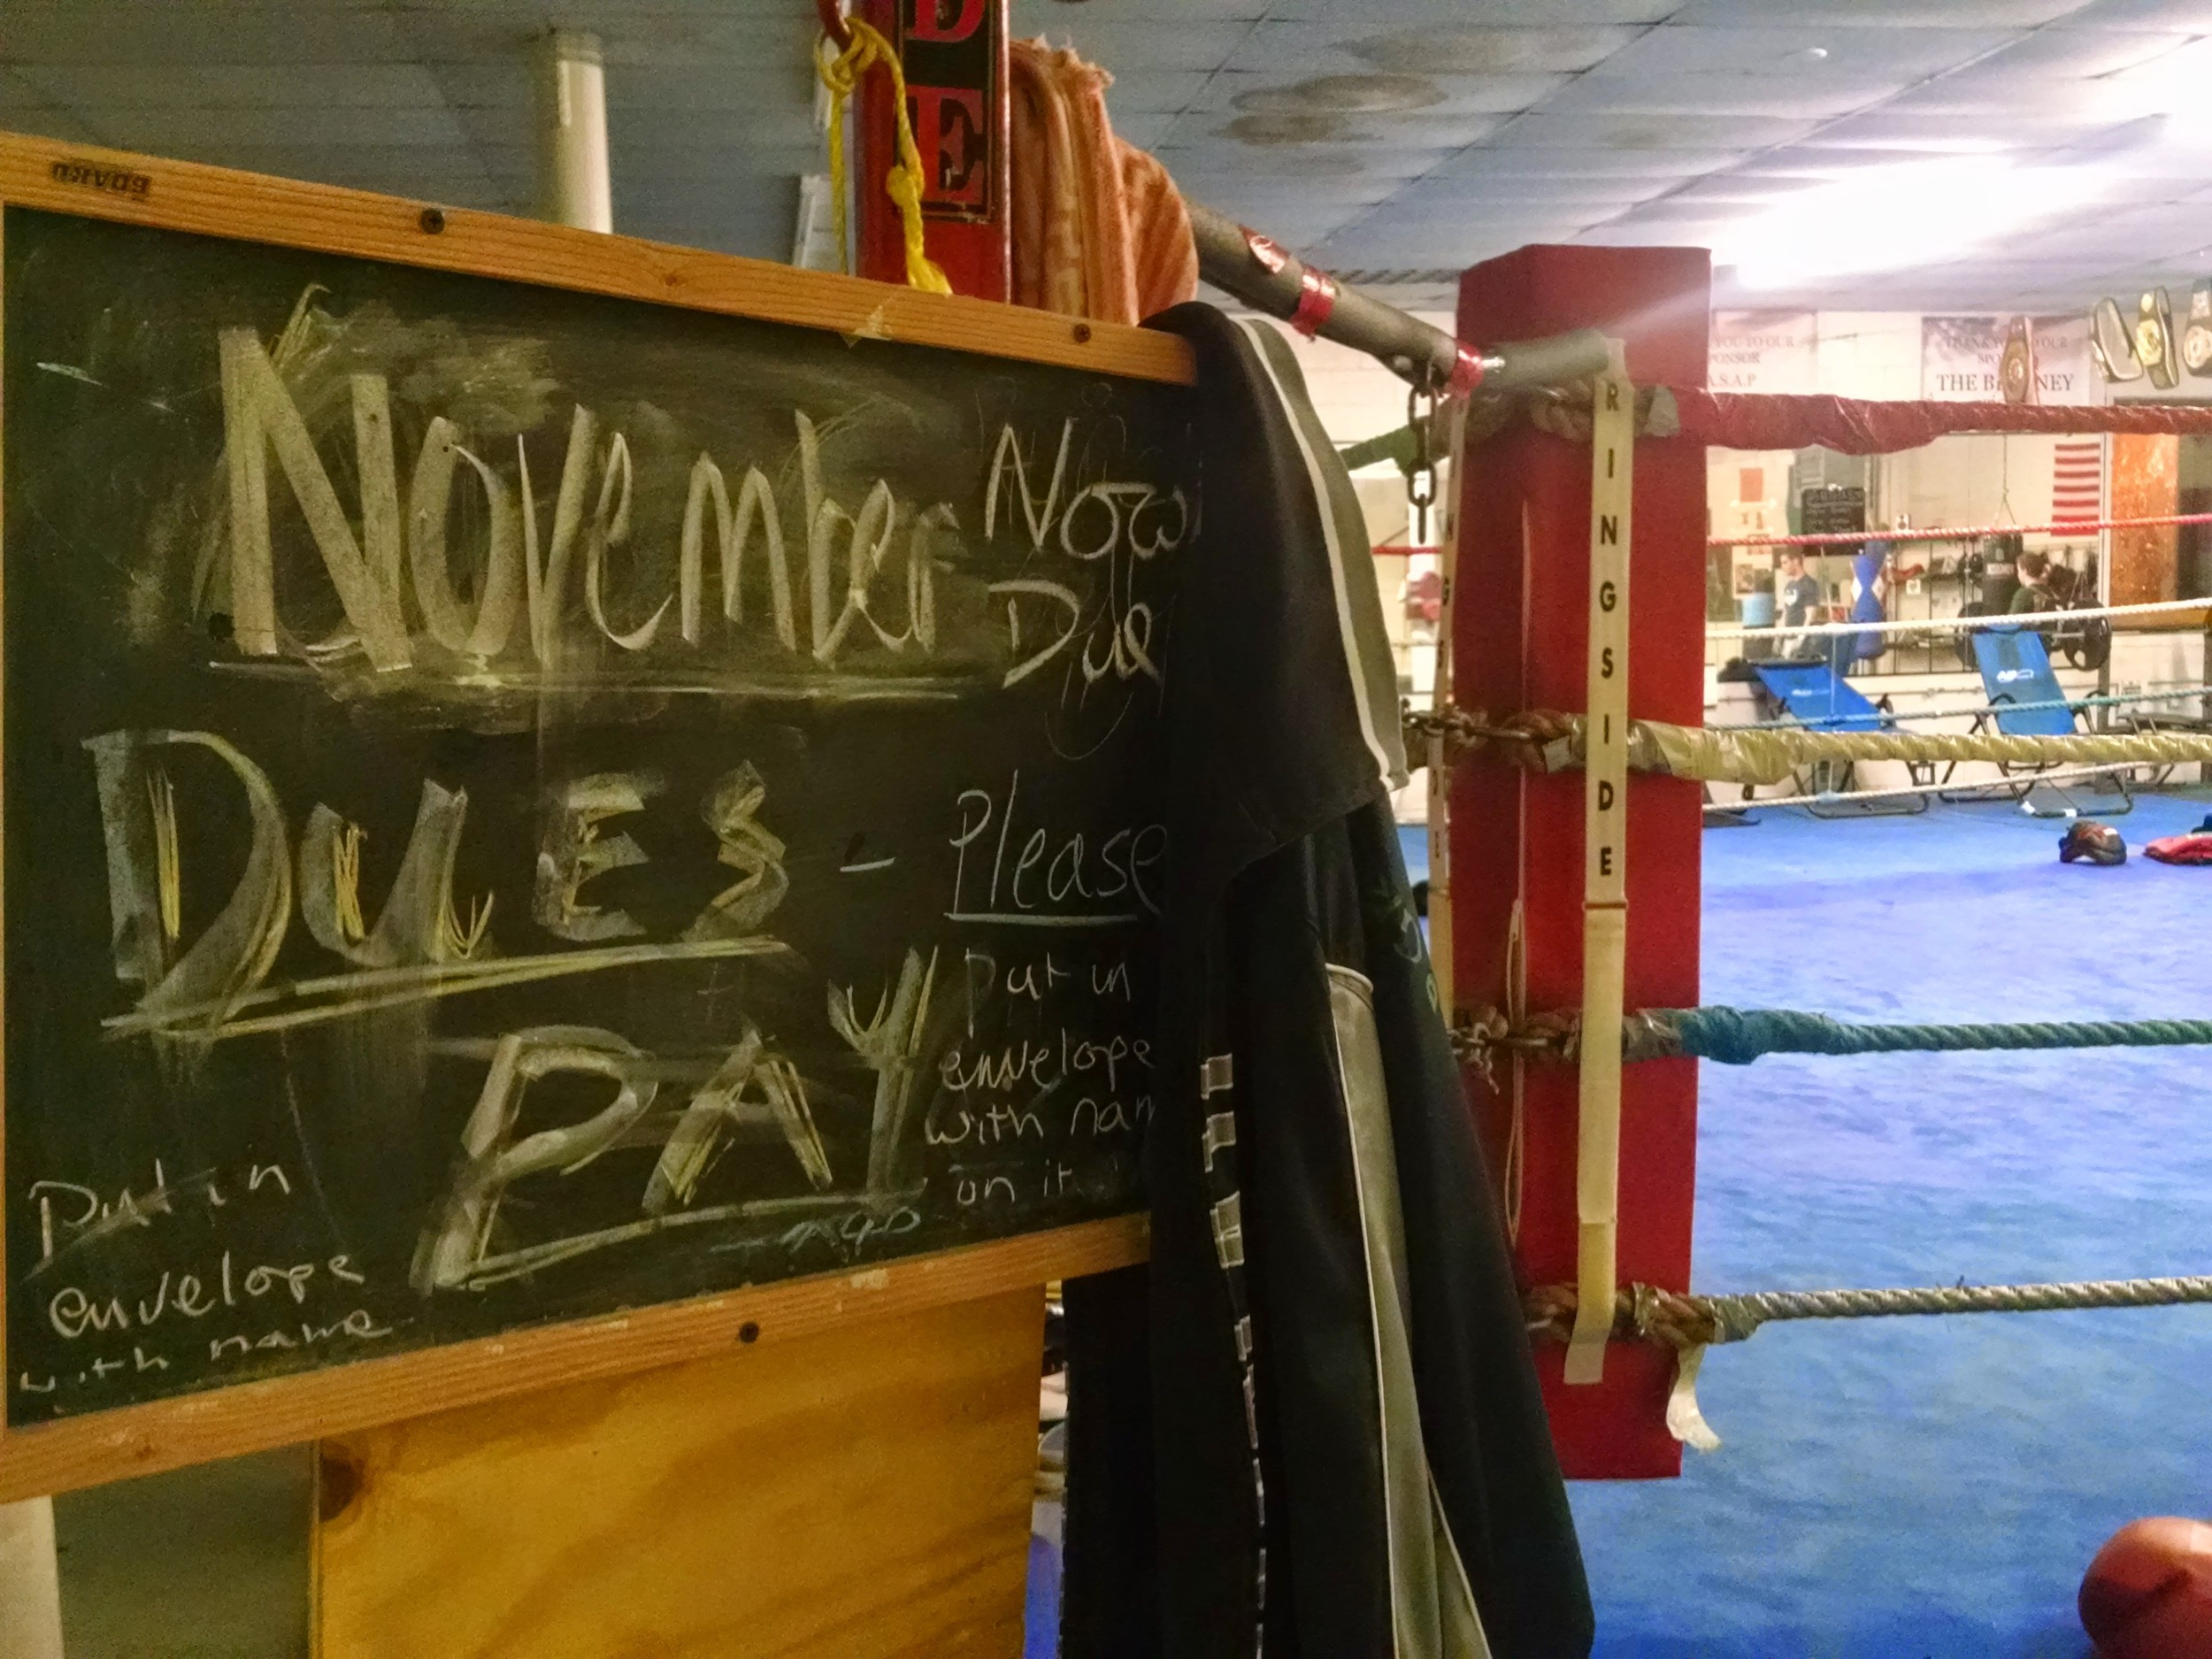 November Dues sign at the Grealish Boxing Club in April.